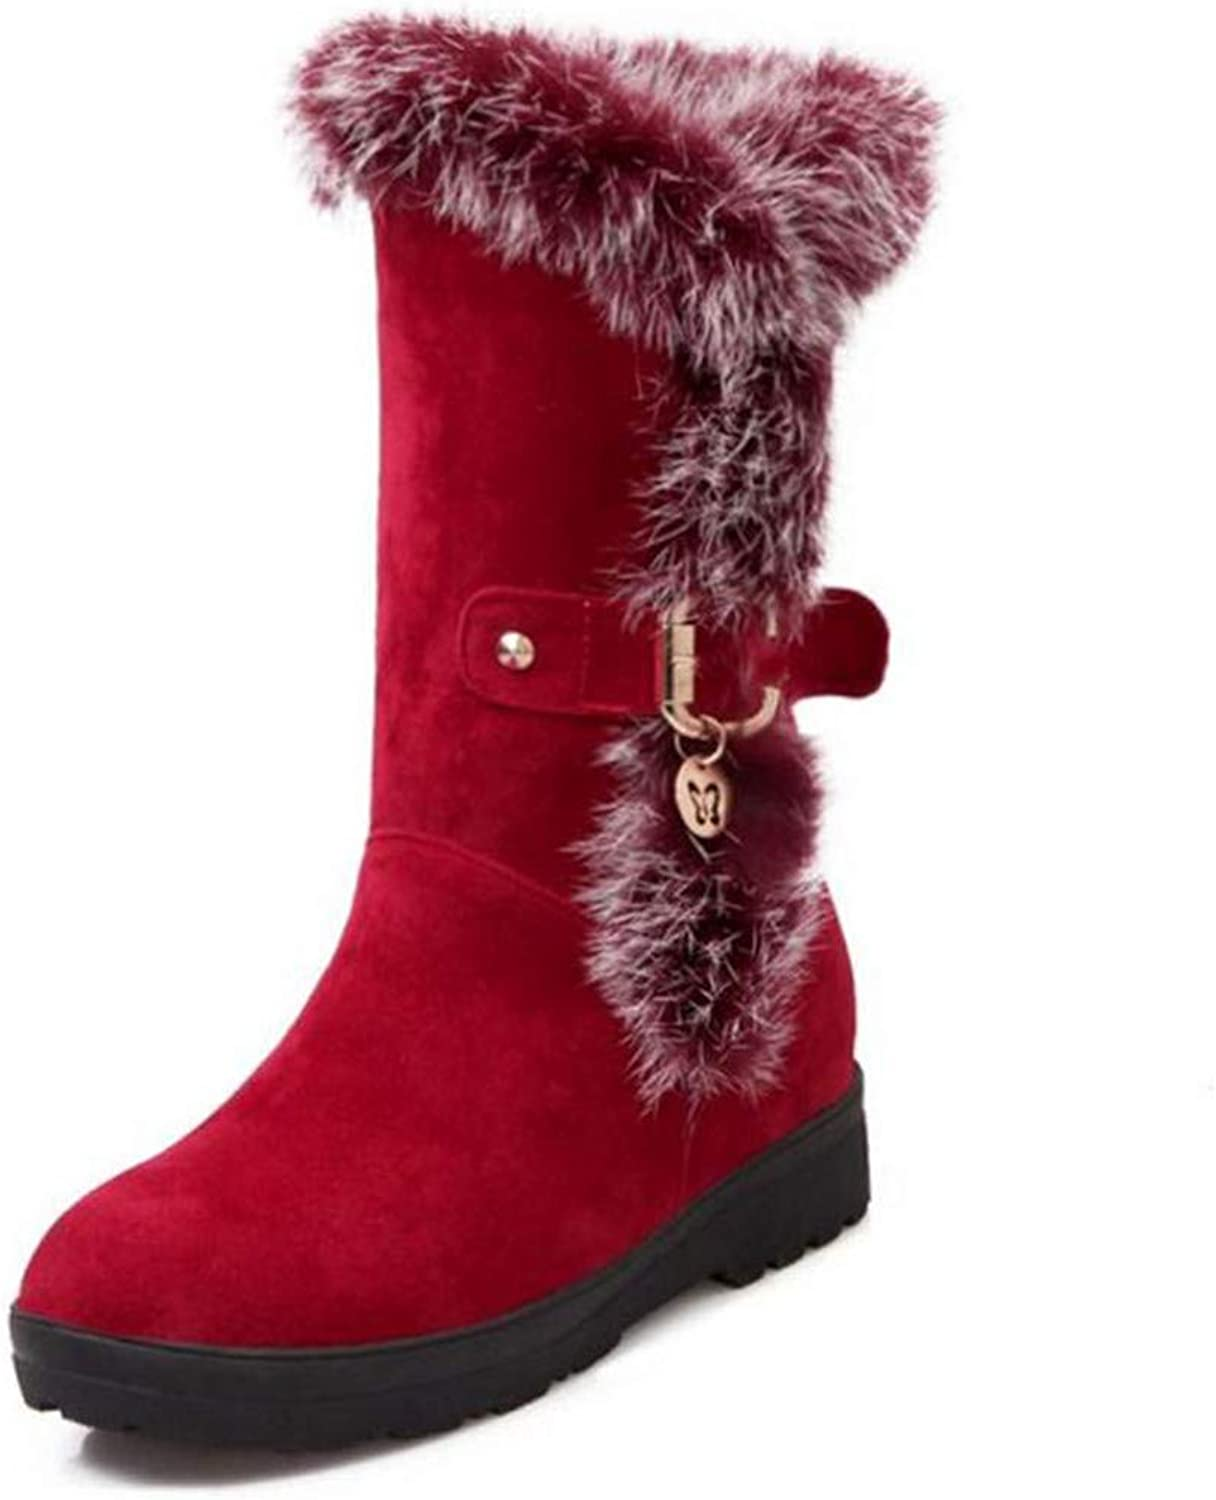 R-Anketsy Winter Snow Boots for Women Heel Half Short Winter Boots with Thick Fur Inside Mid